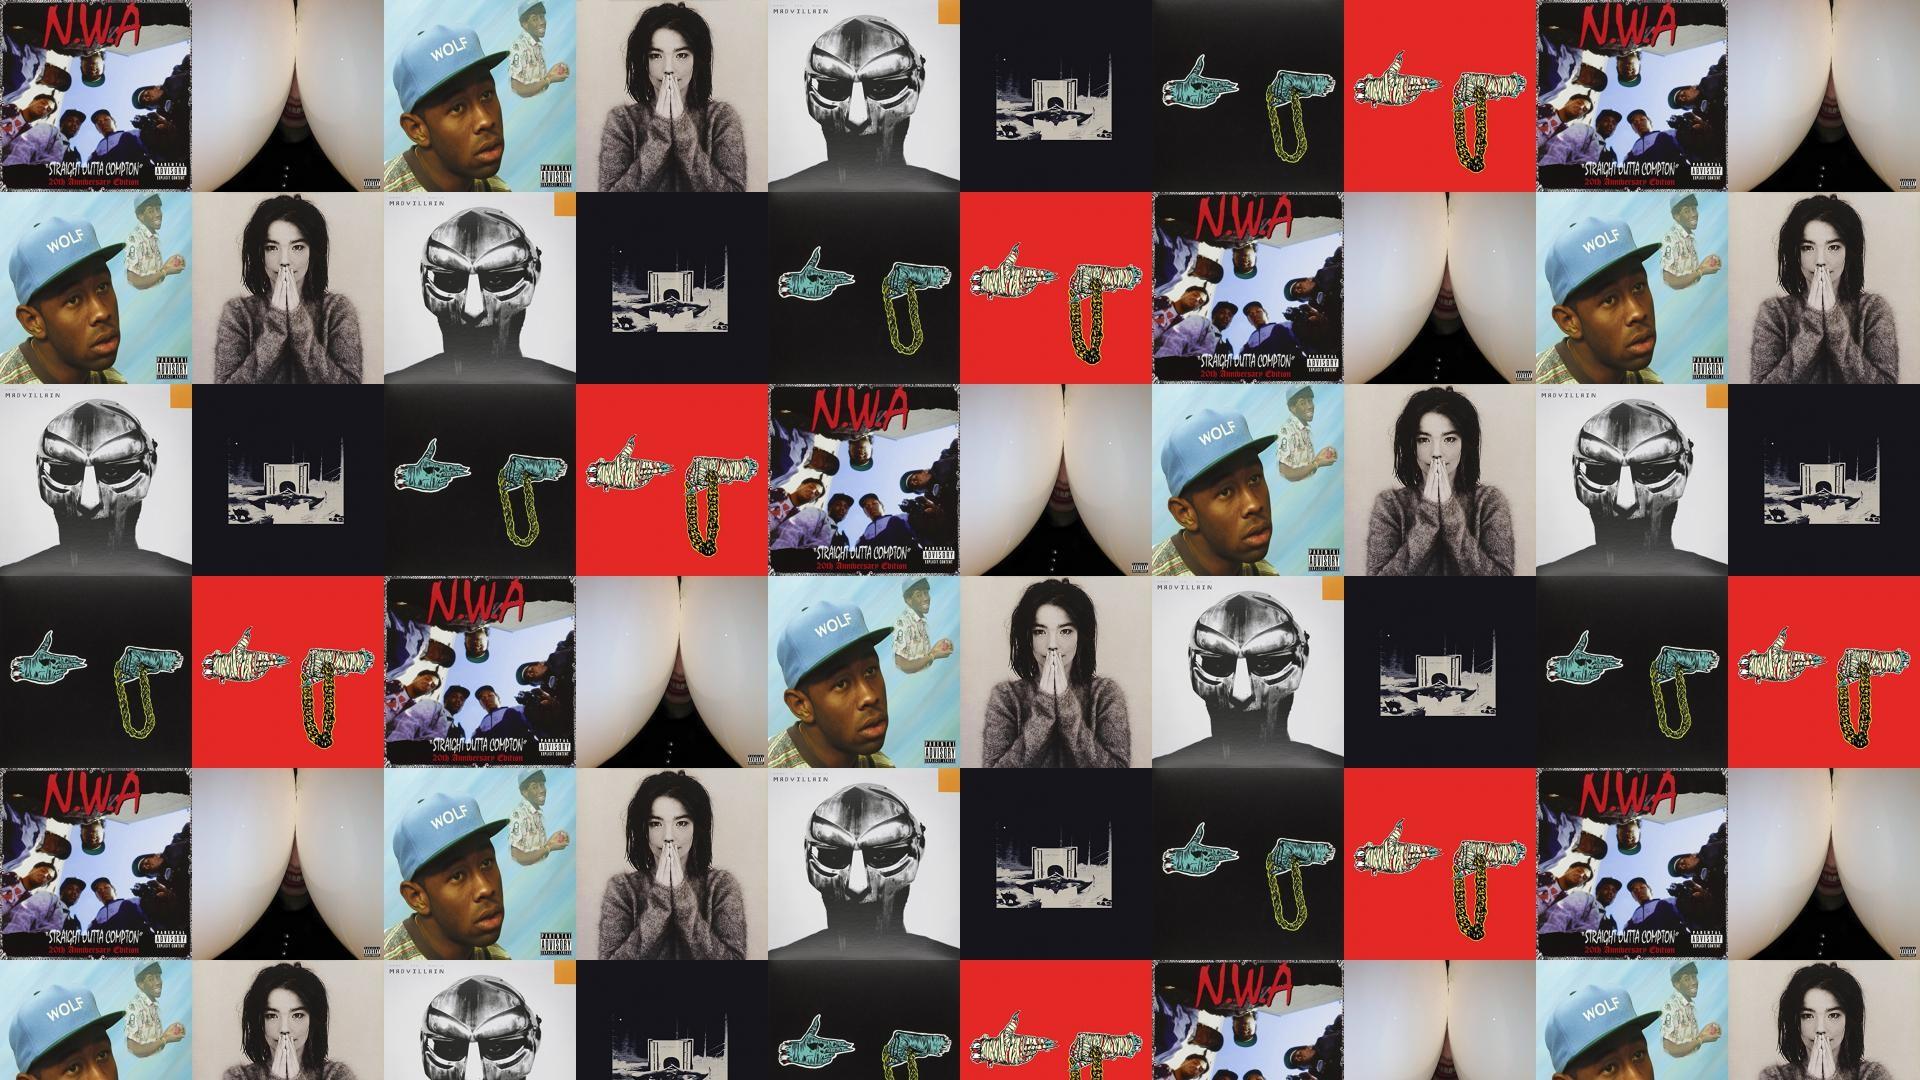 Res: 1920x1080, Download this free wallpaper with images of NWA – Straight Outta Compton,  Death Grips – Bottomless Pit, Tyler The Creator – Wolf, Bjork – Debut, ...